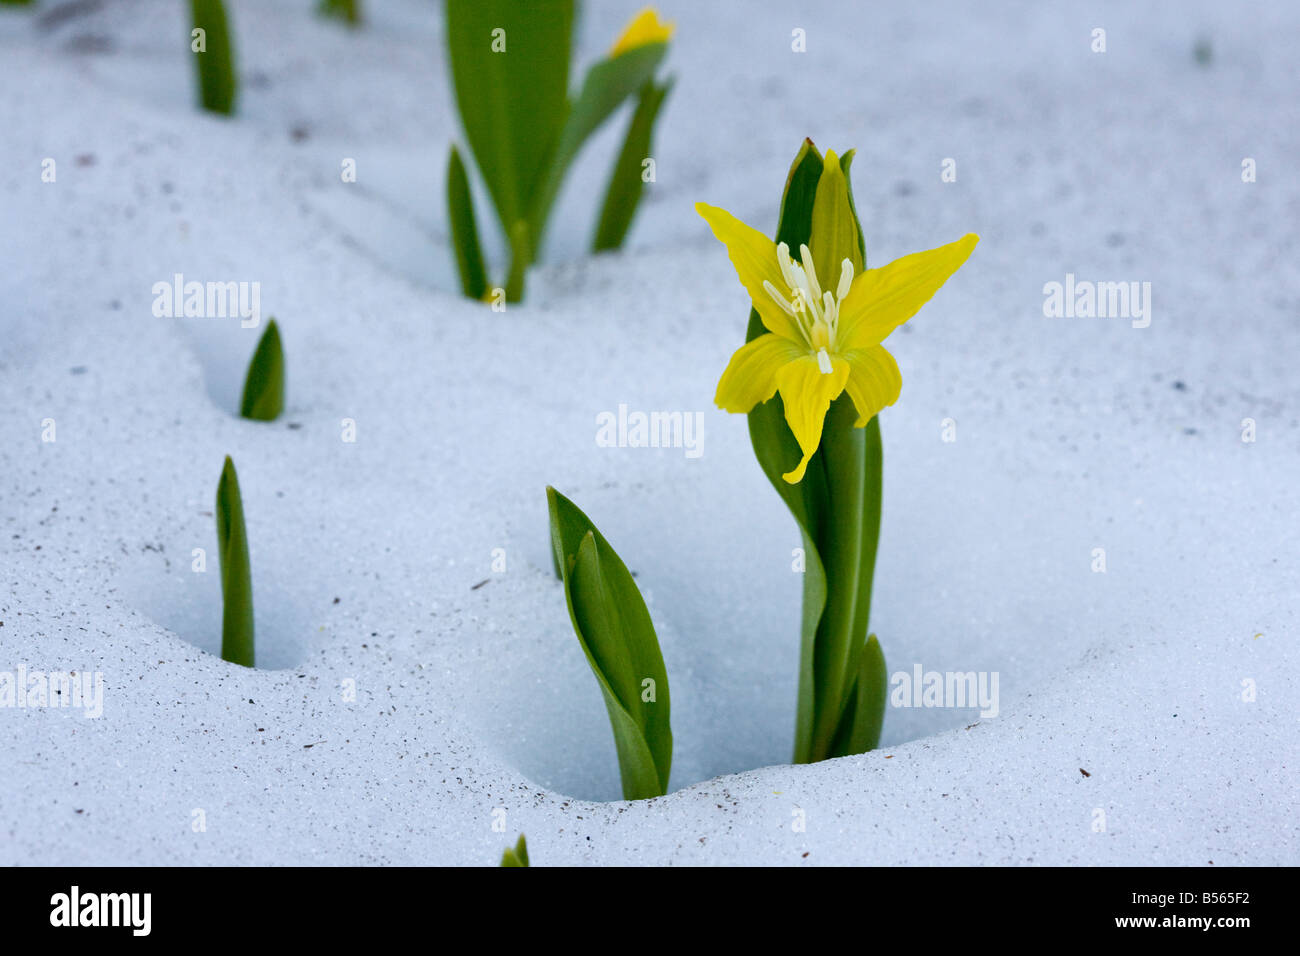 Tundra flowers stock photos tundra flowers stock images page 16 glacier lily or yellow avalanche lily erythronium grandiflorum pushing up through the snow at high altitude mightylinksfo